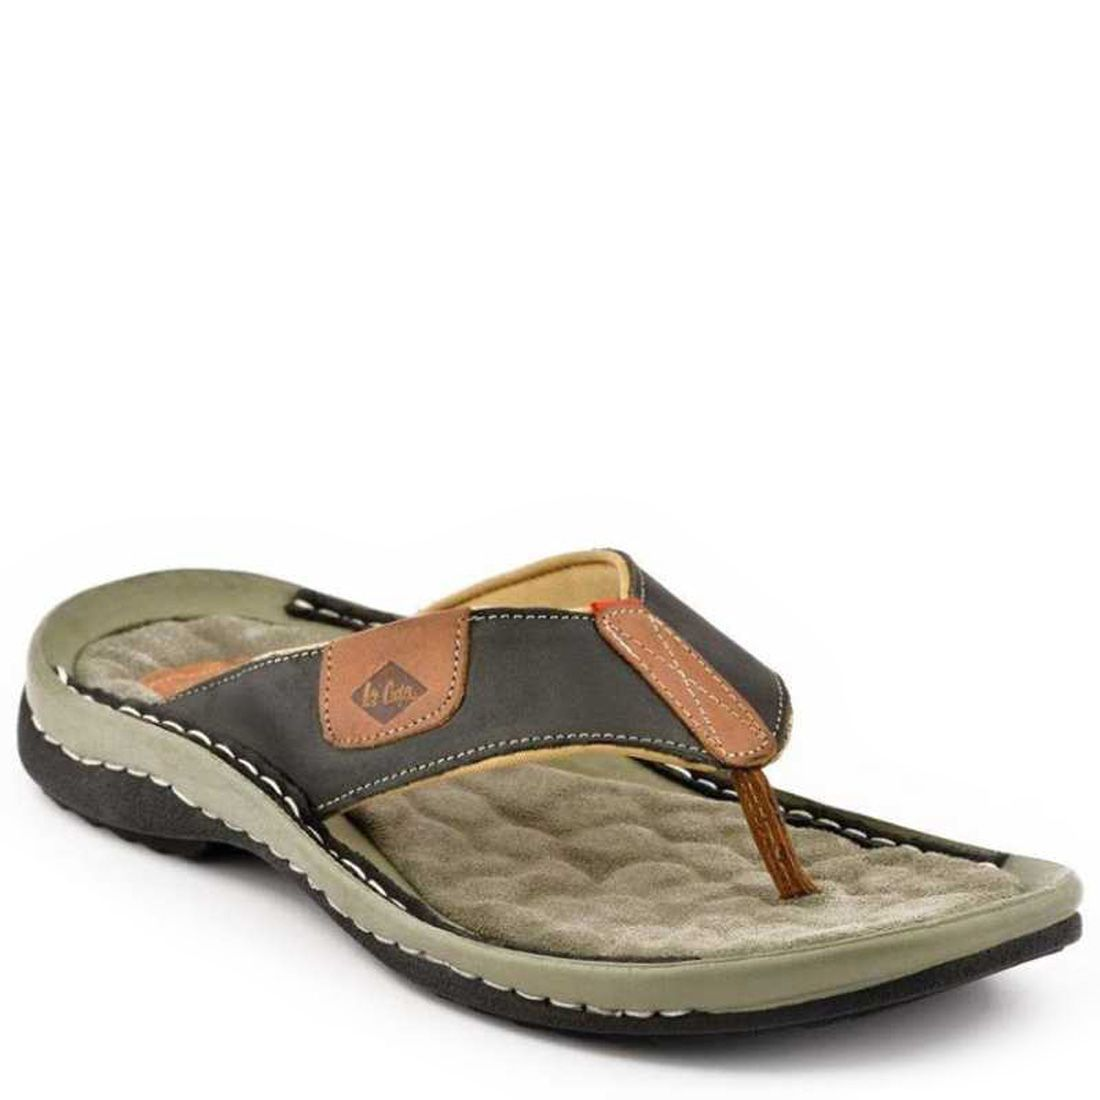 LEE COOPER CASUAL CHAPPAL FOR MEN LC8765